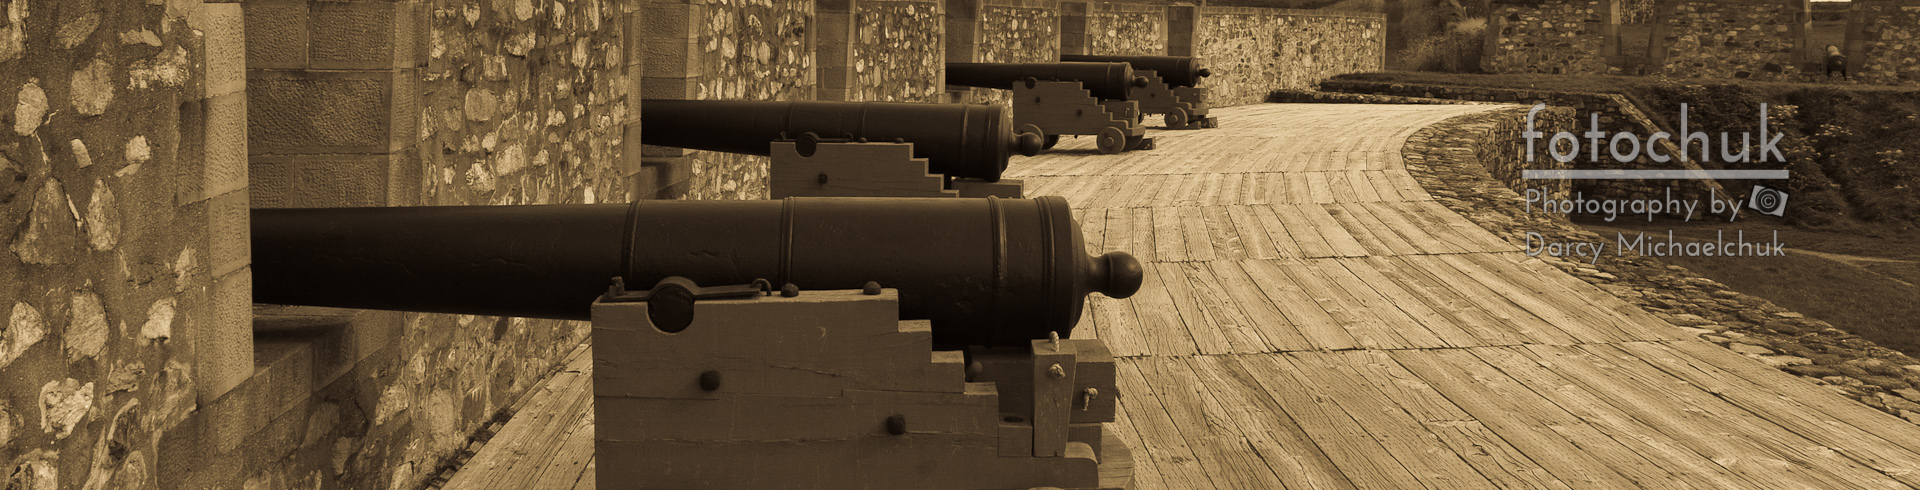 Cannons at Louisberg Fortress